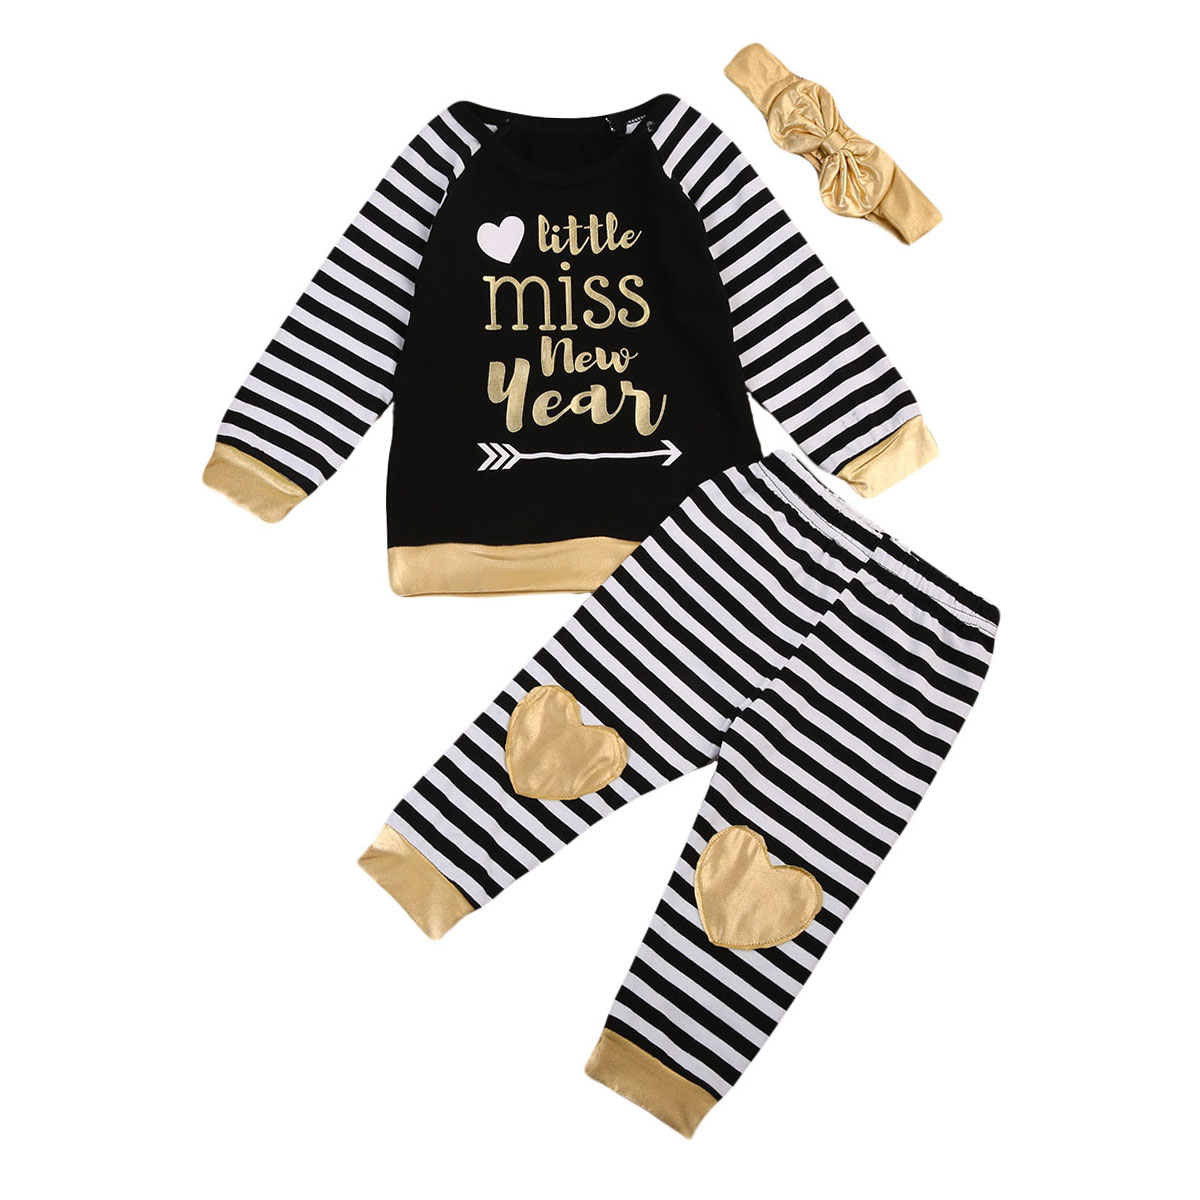 3pcs Toddler Baby Boy Girl T-shirt Striped Pants Outfits Clothes Set Cotton Casual Long Sleeve Autumn Winter Coat Sets 2pcs children outfit clothes kids baby girl off shoulder cotton ruffled sleeve tops striped t shirt blue denim jeans sunsuit set